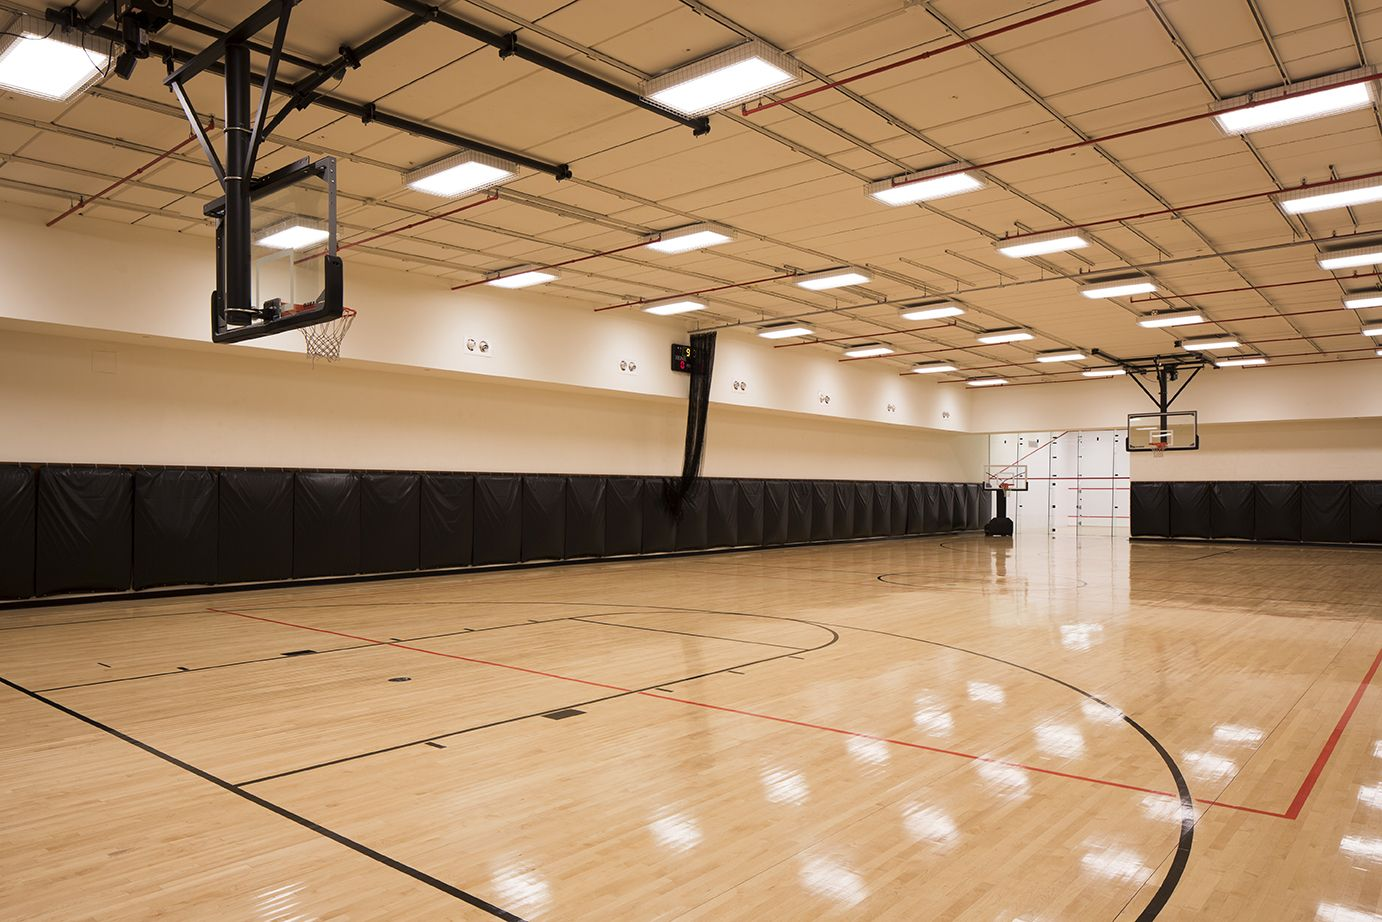 Full size indoor basketball court | The Ashley | Pinterest ...